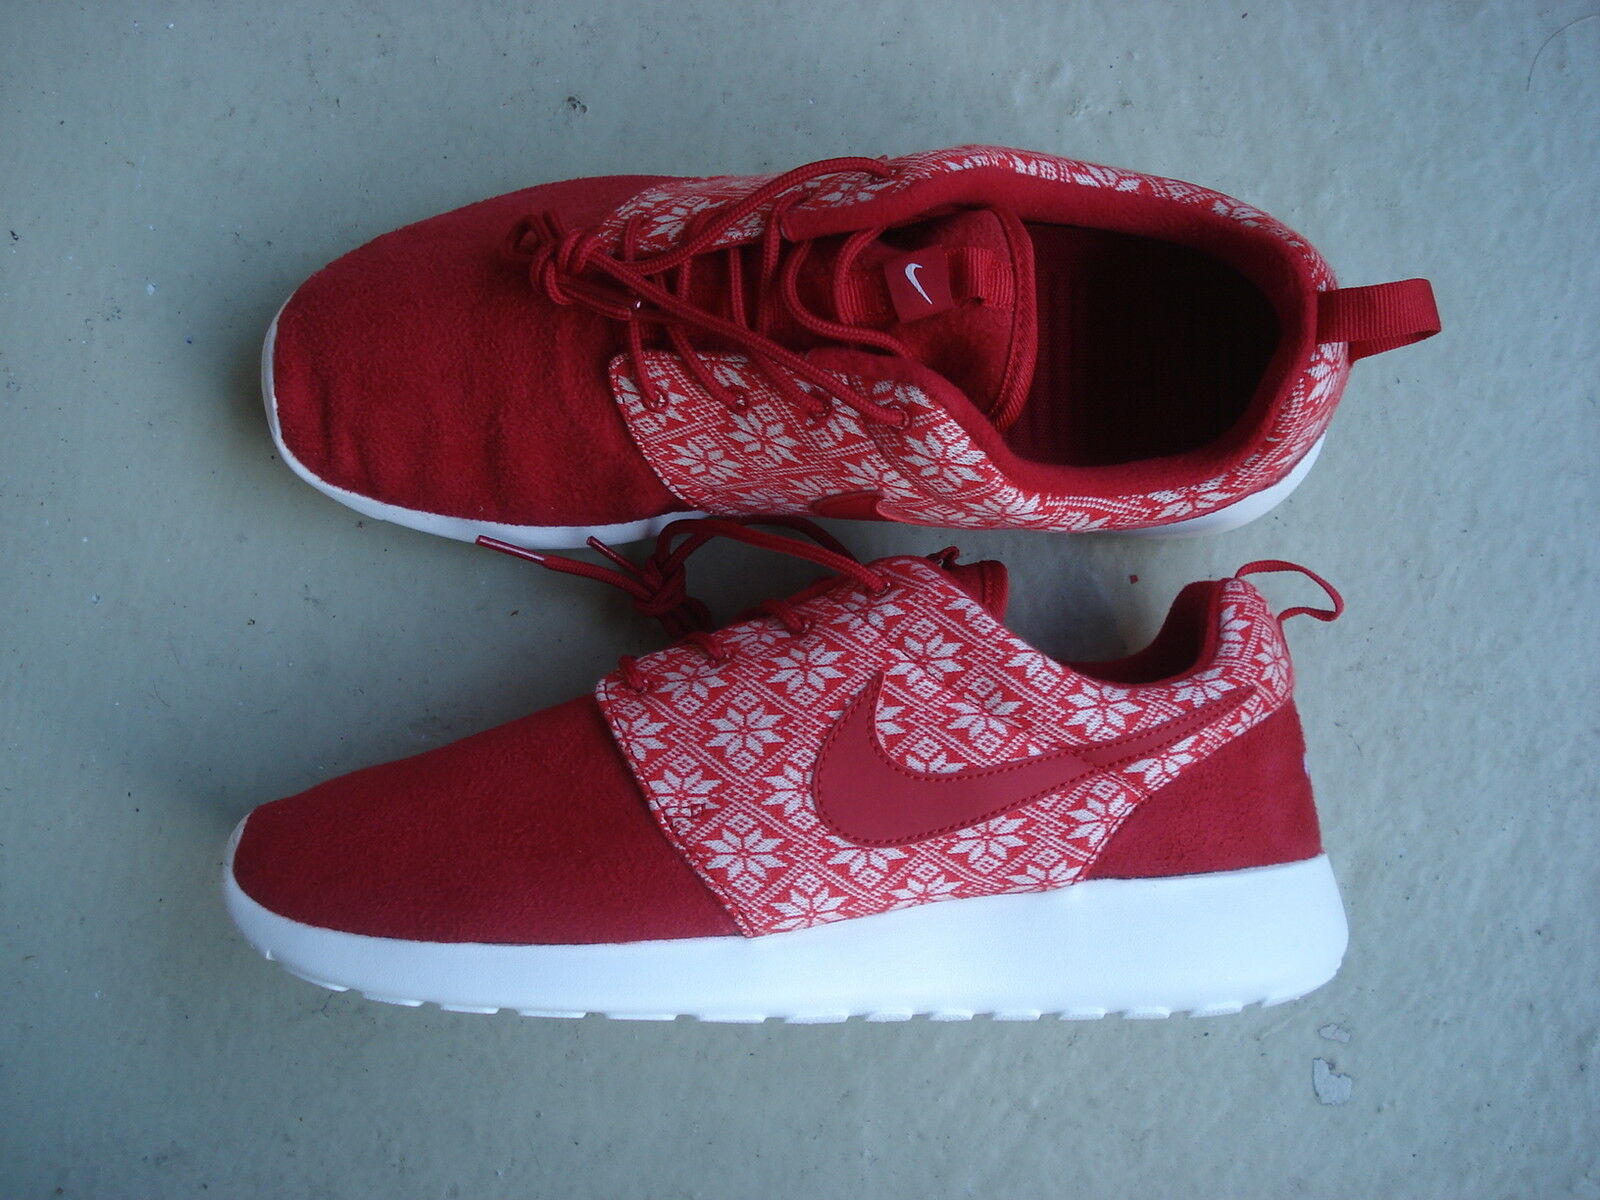 Nike Air Roshe One Winter 44.5 Gym Red/Gym Red-Sail